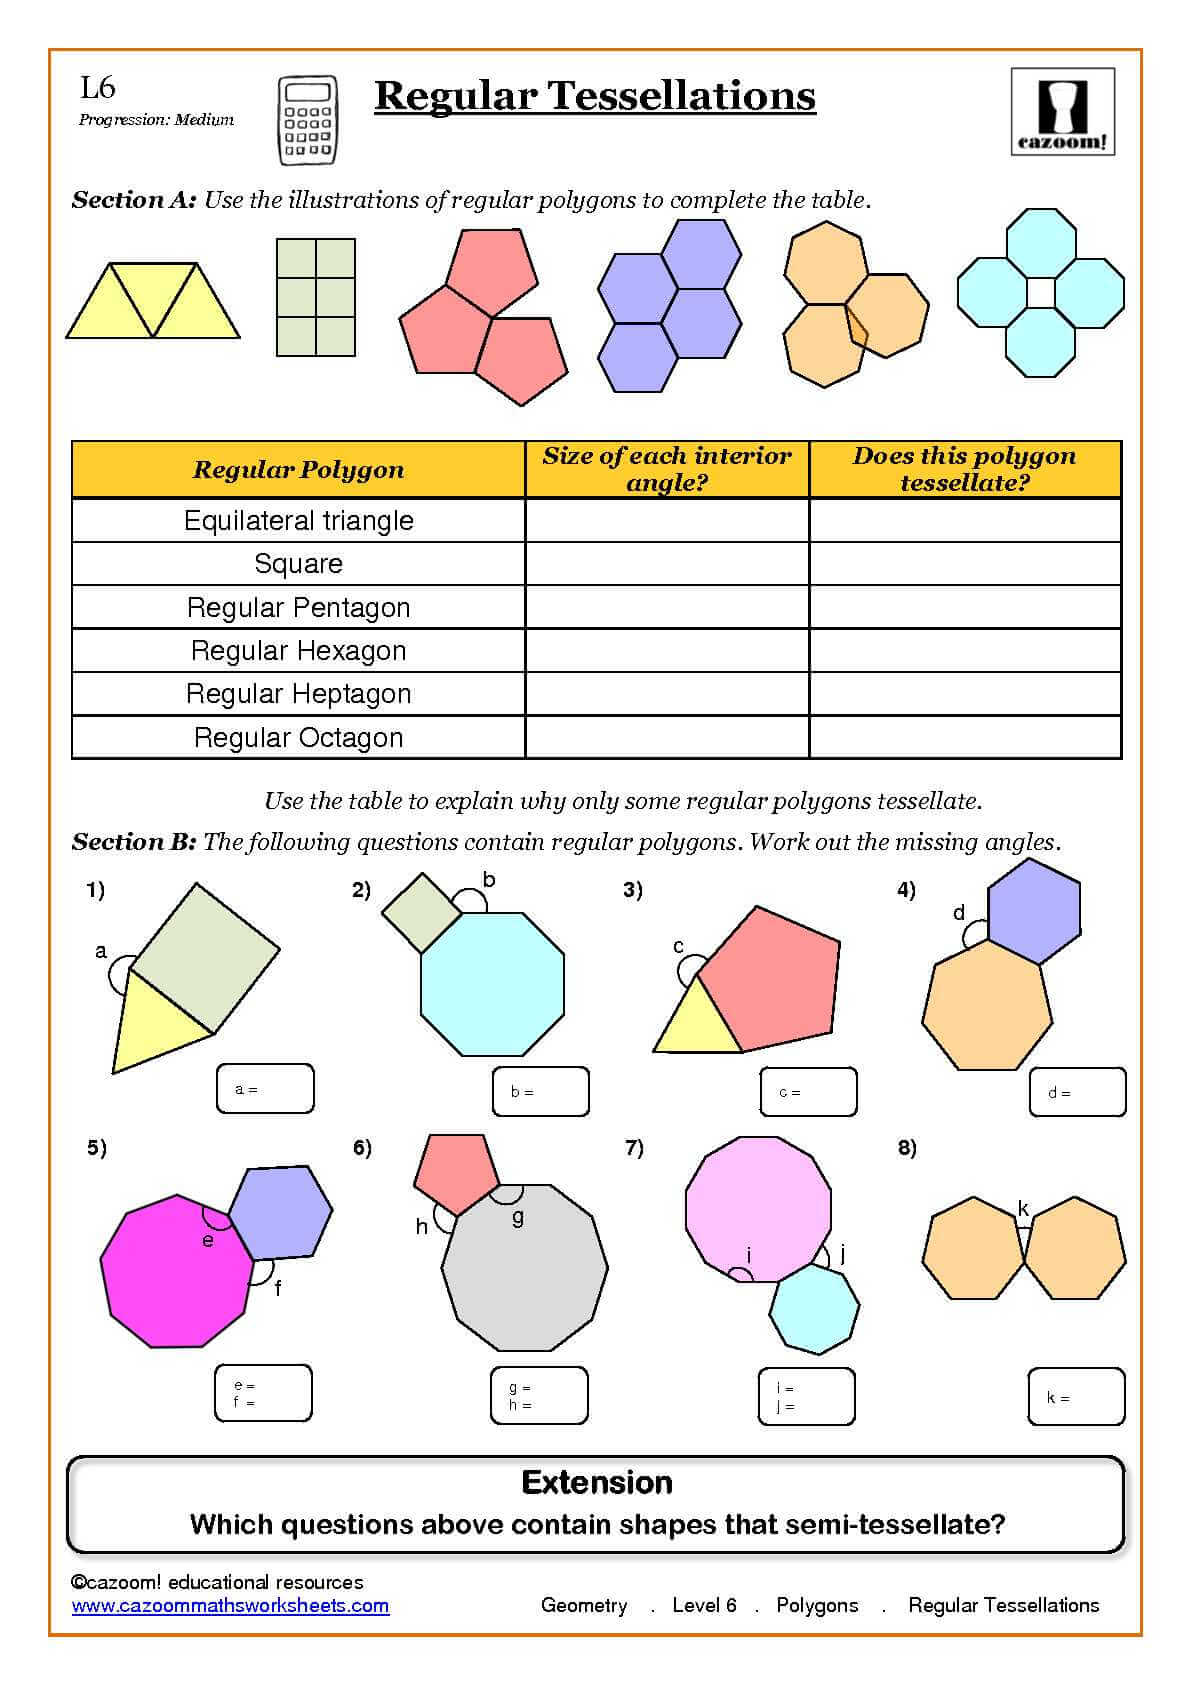 Trigonometry and Pythagoras WorksheetsGeometry Maths Worksheet ks3, Regular Shapes